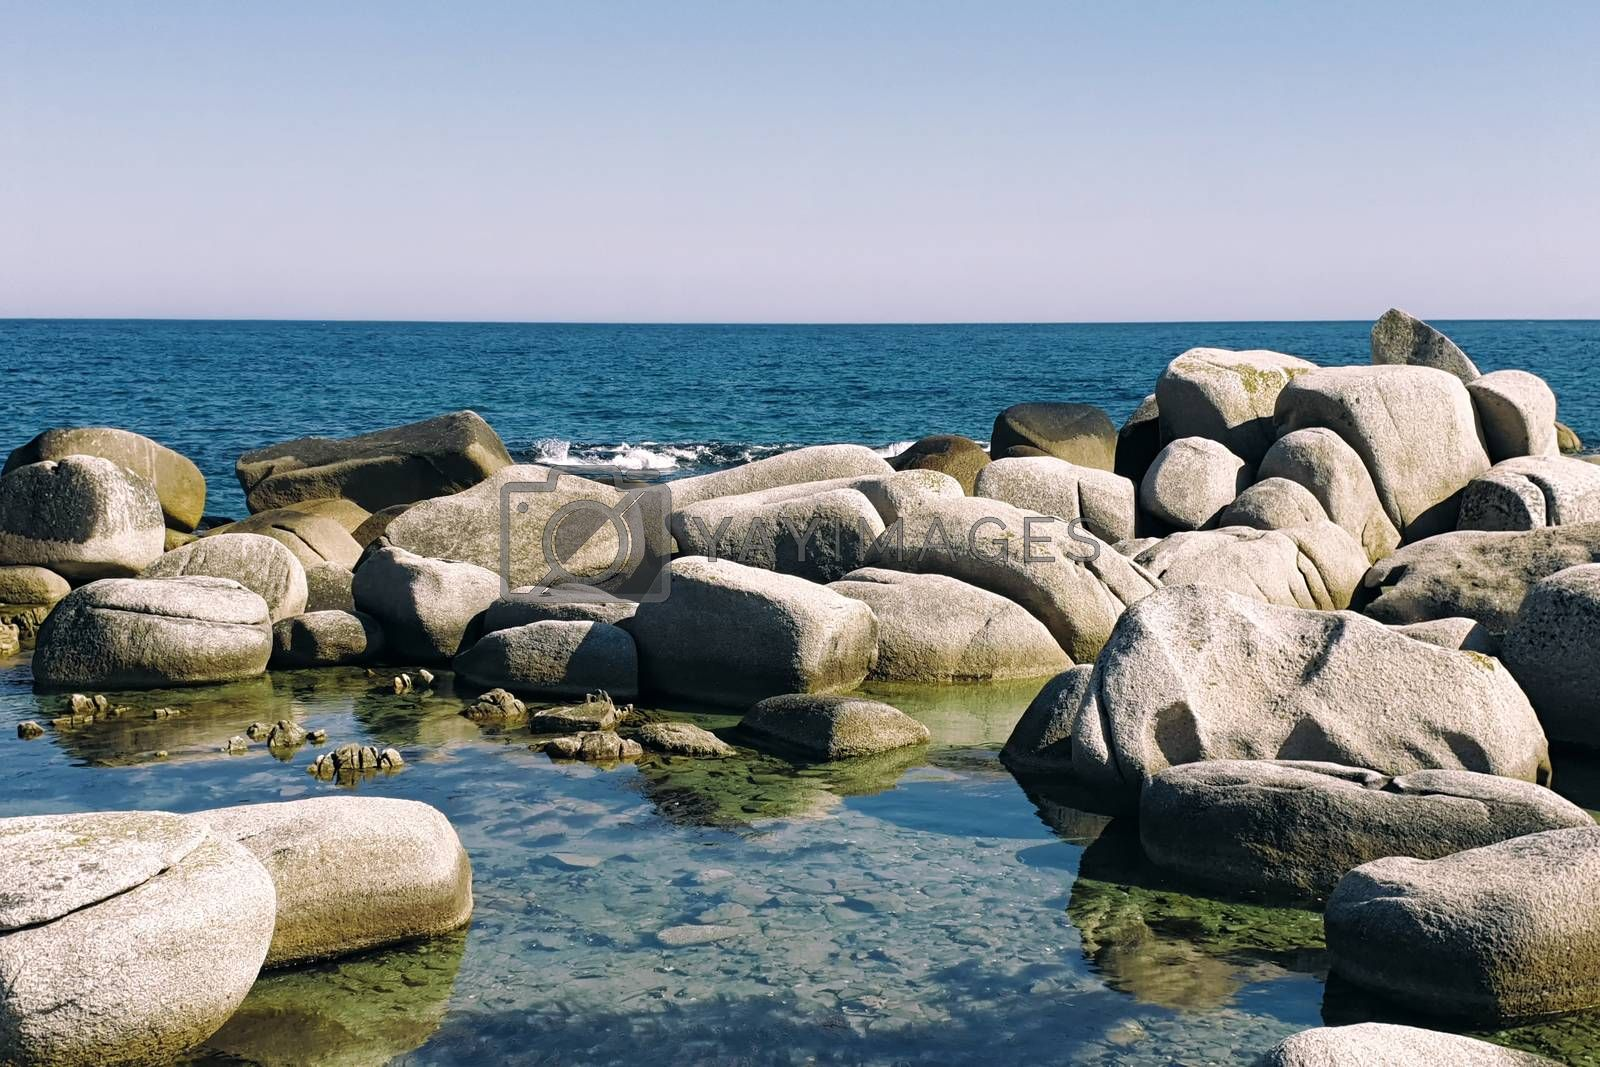 Boulders on the coast. Boulders beach view